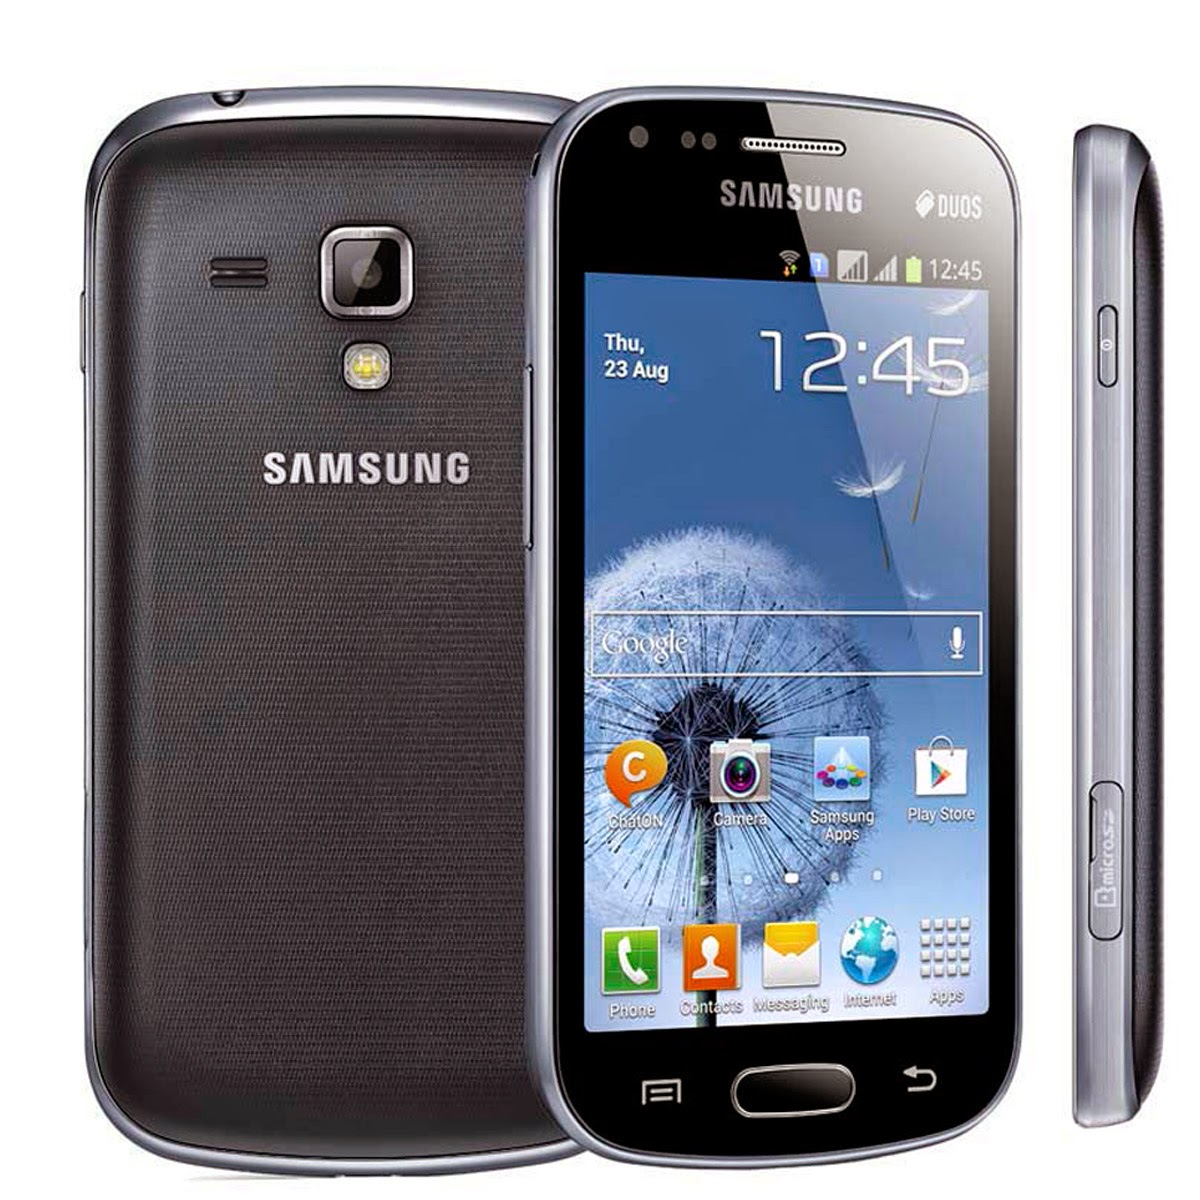 Features of samsung galaxy s3 i9300i phone unlocked - pebble blue